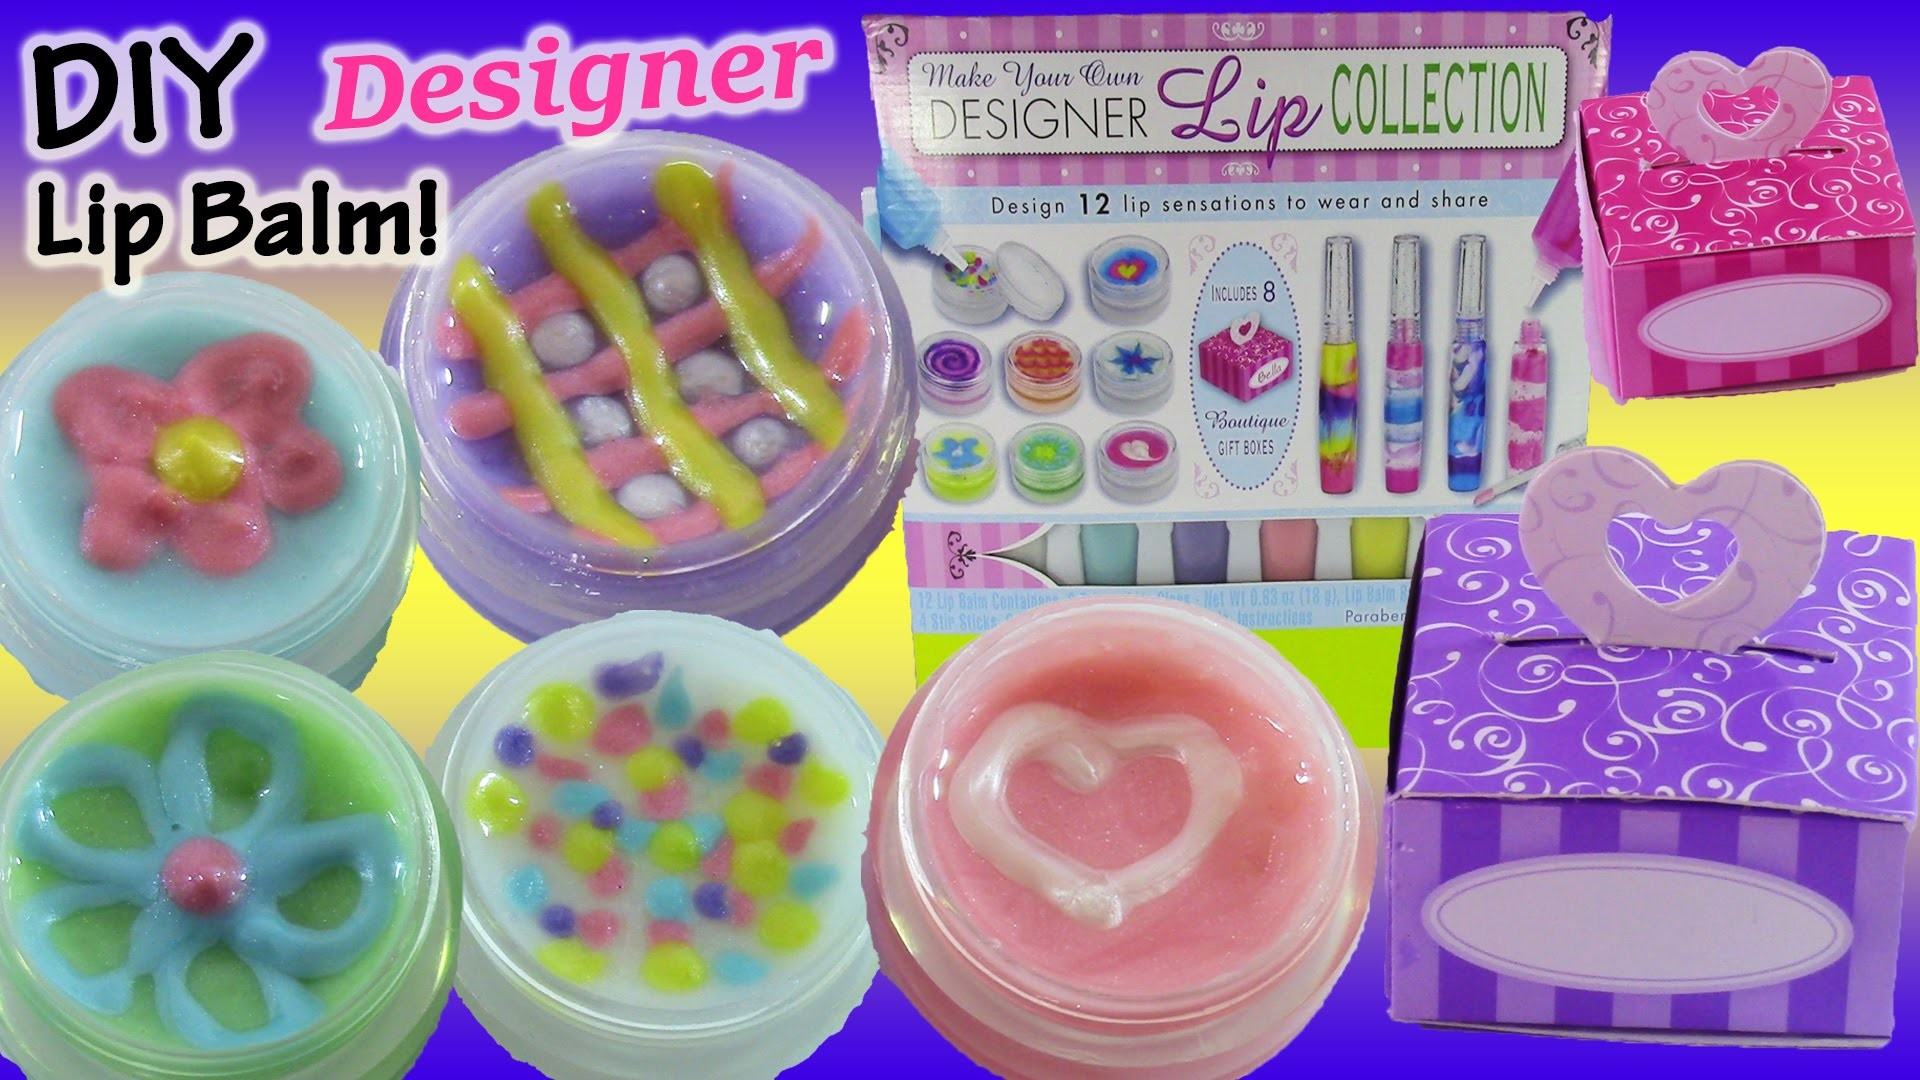 DIY Designer Lip Gloss! Mix Make & Design Your Own Glitter lip Balm! Shopkins Nail Kit! FUN